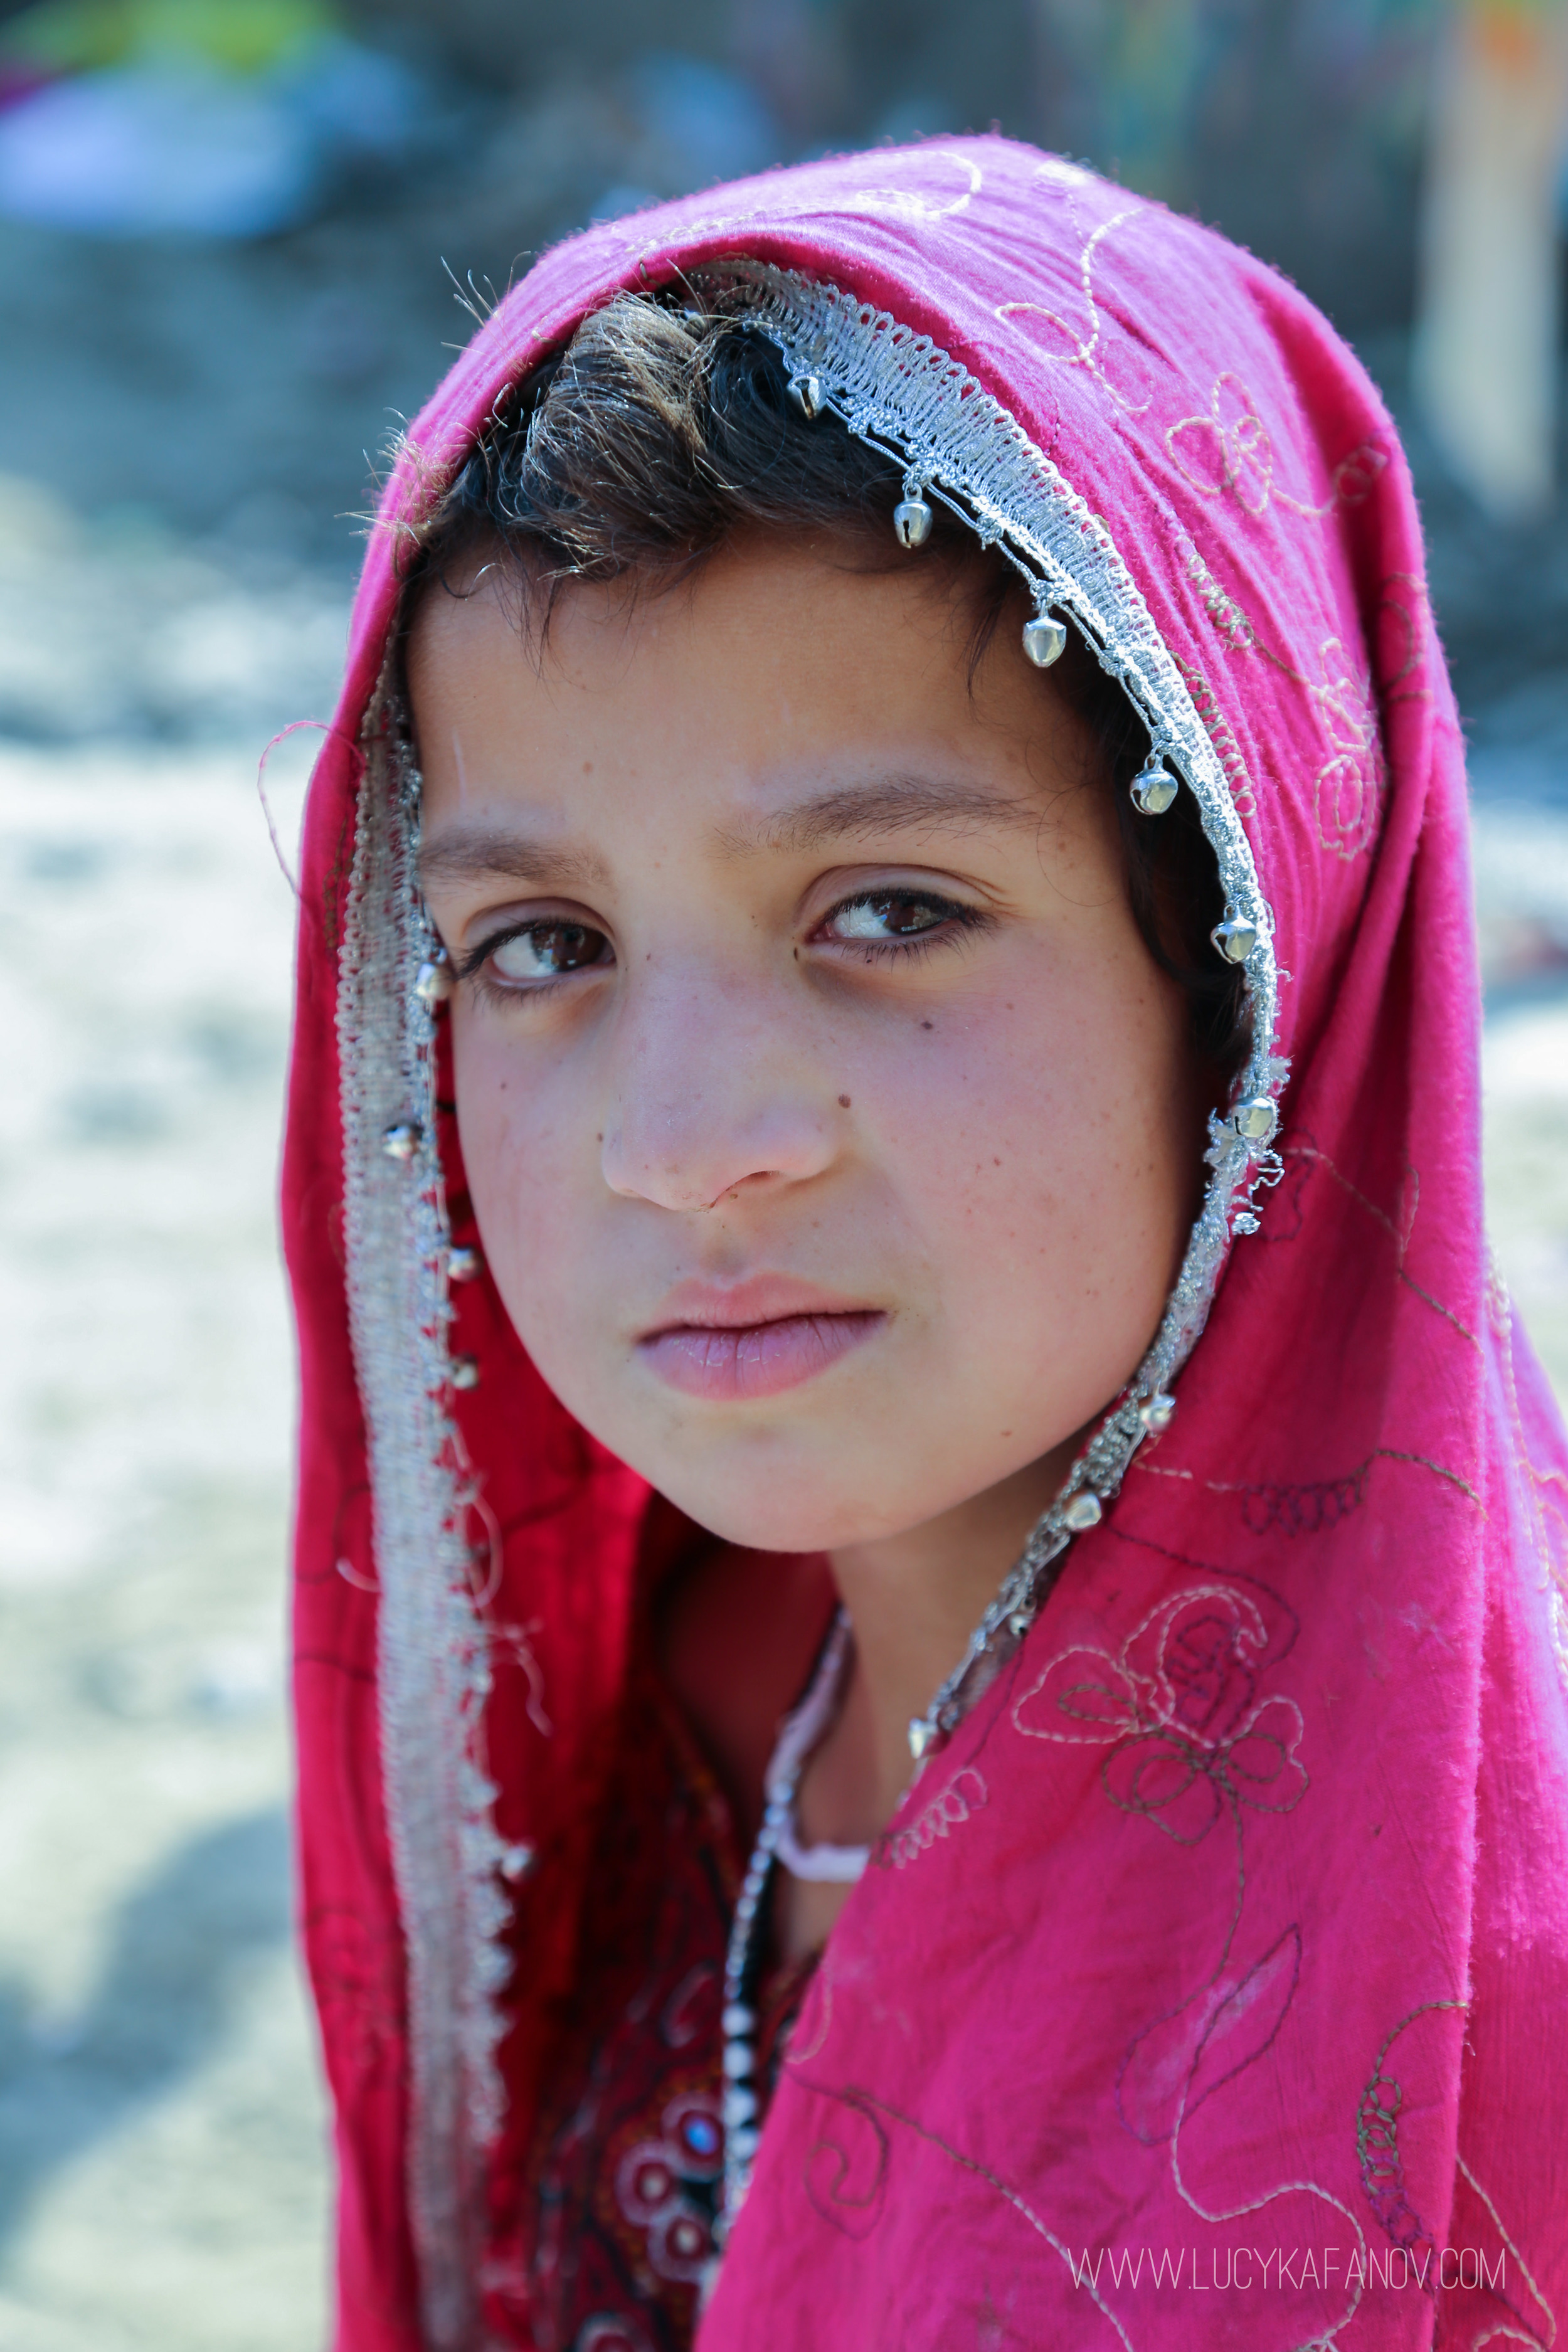 A young Afghan girl at a camp for Internally Displaced Persons.